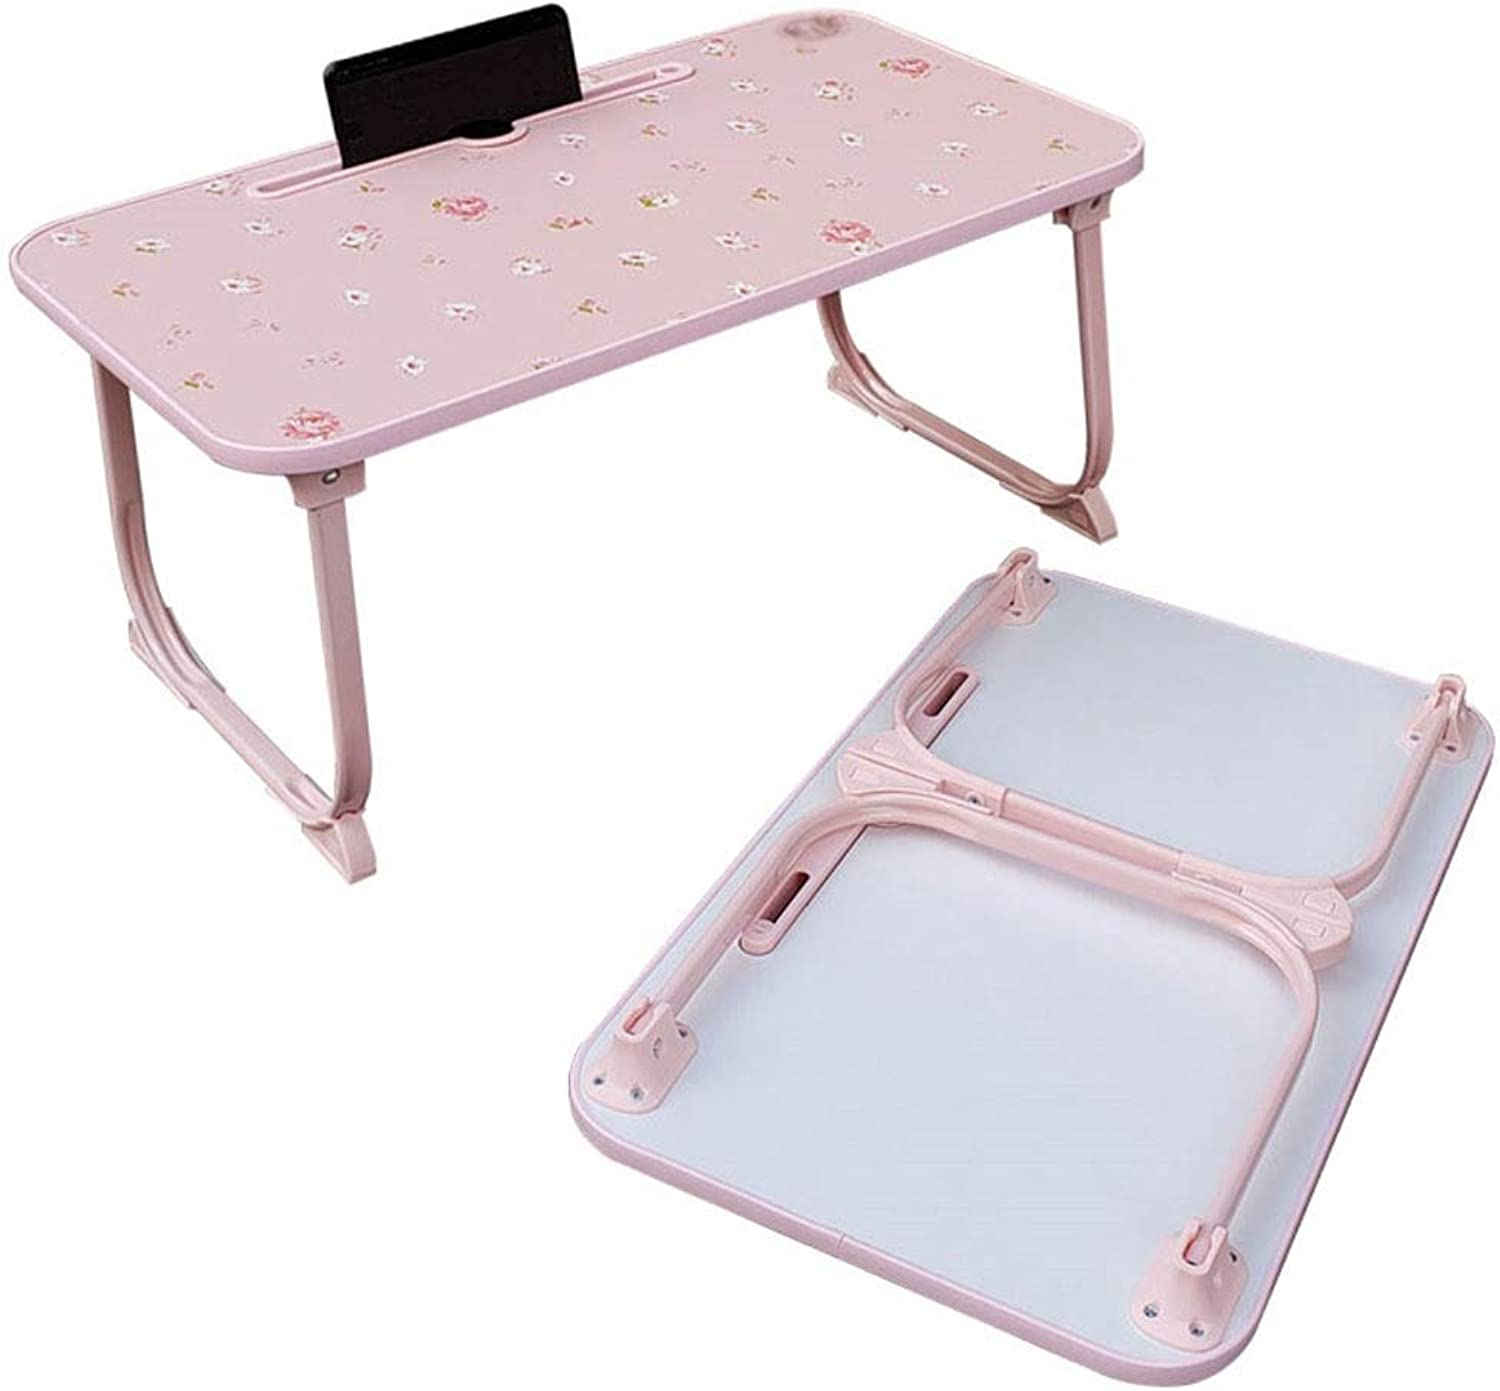 Learn Read Small Table Lazy Bed Breakfast Table Foldable Laptop Table Write Writing L58×W34×H26.5cm GW (color   Pink Floral)